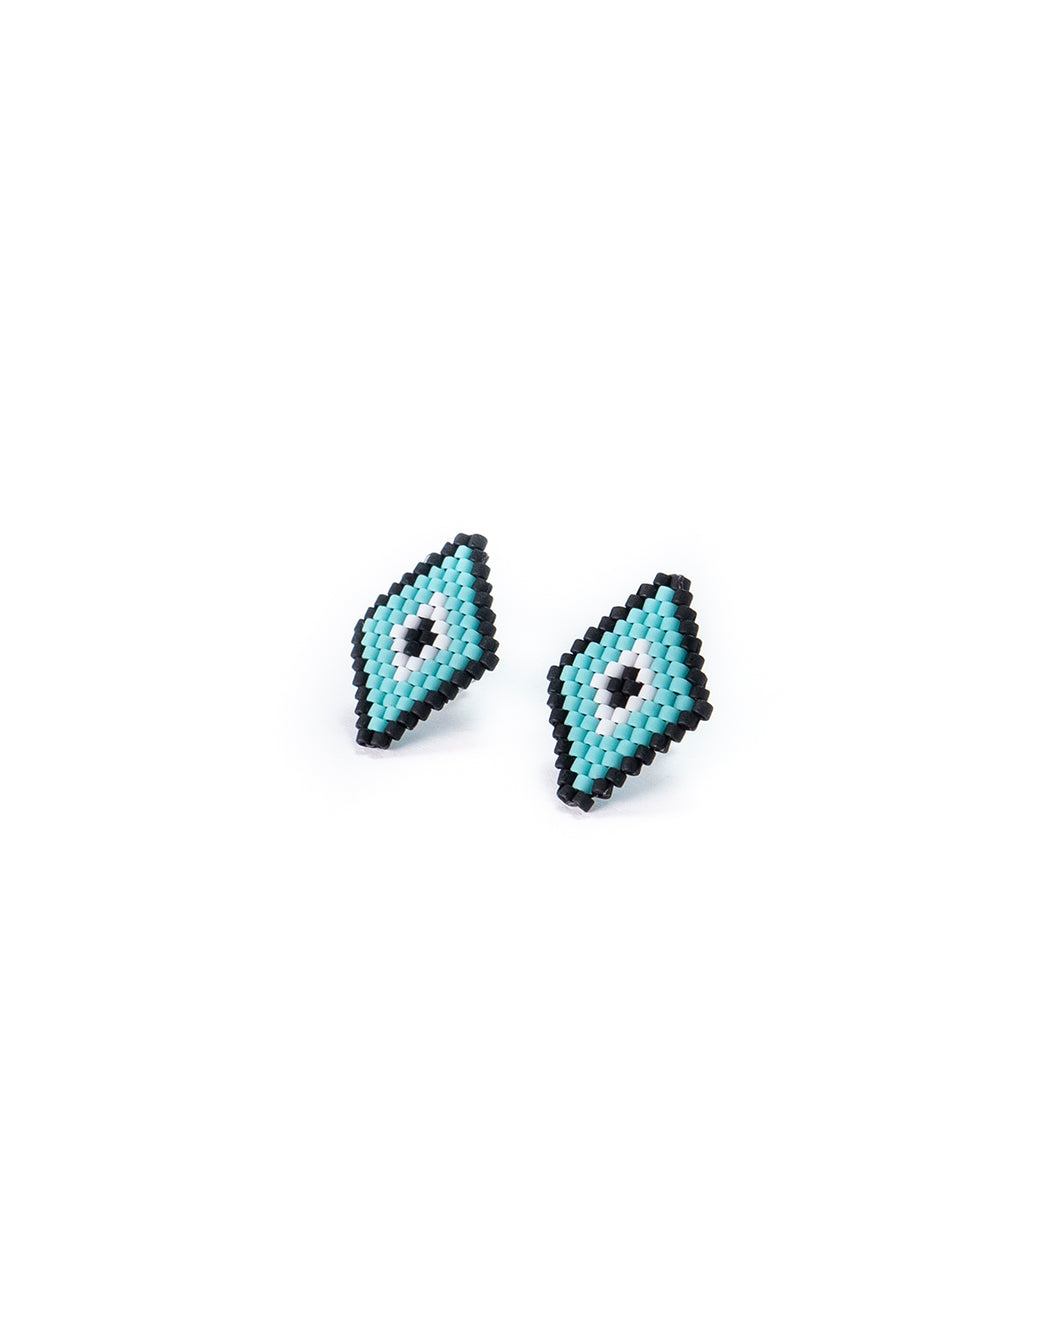 Turquoise Diamond Earrings